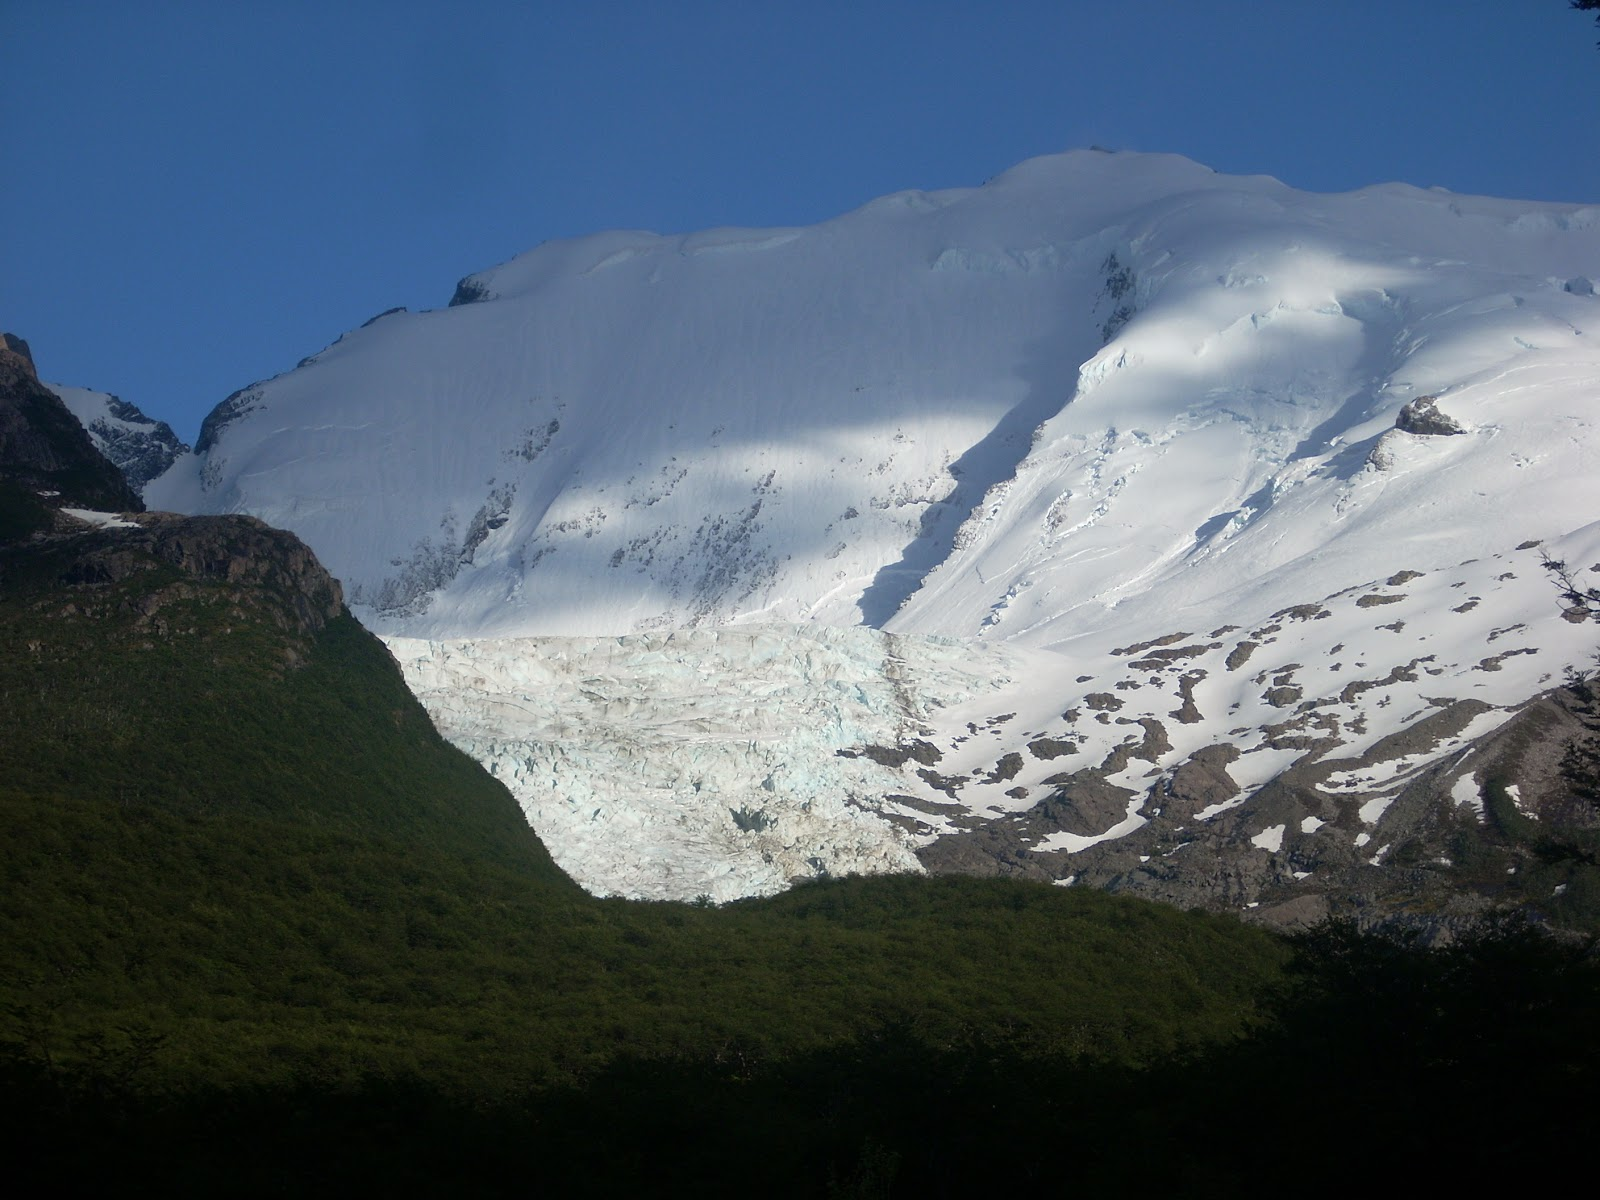 Woke up the following morning, to realise a glacier was very close to the campsite.